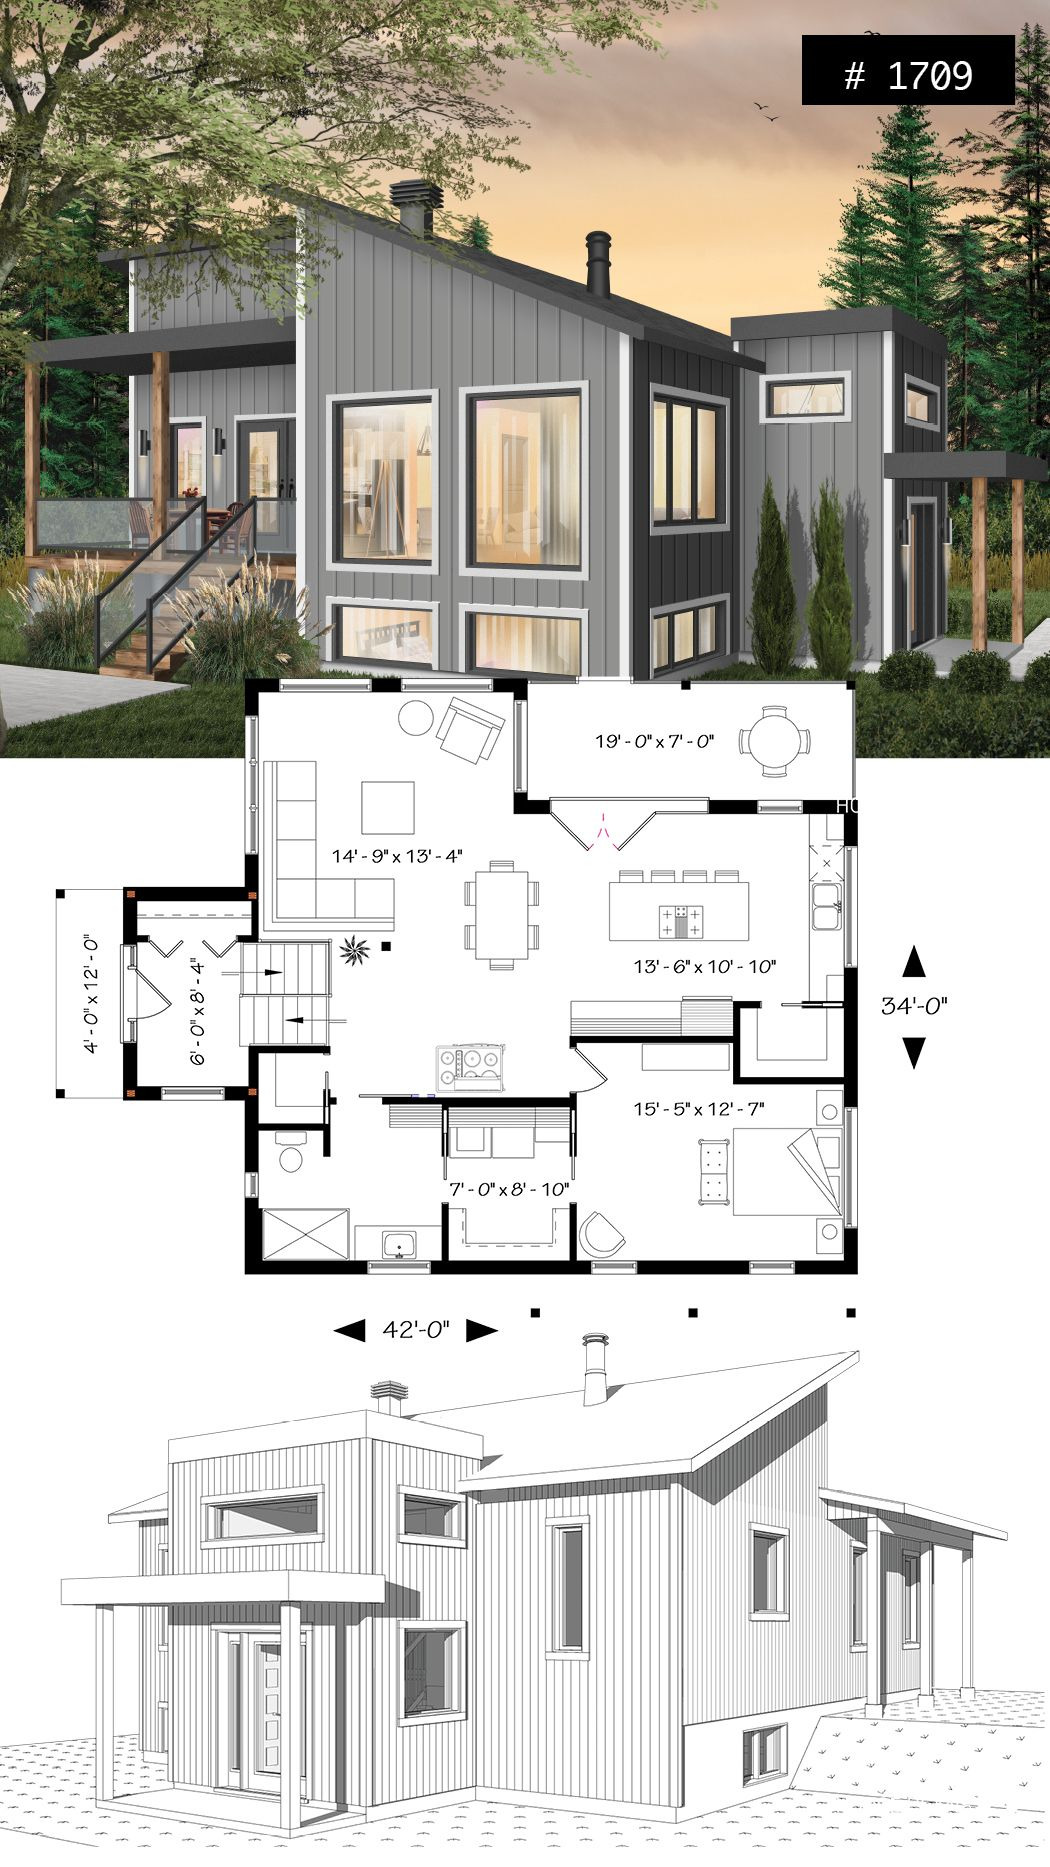 Contemporary Open Floor Plan House Designs Lovely House Plan Billy No 1709